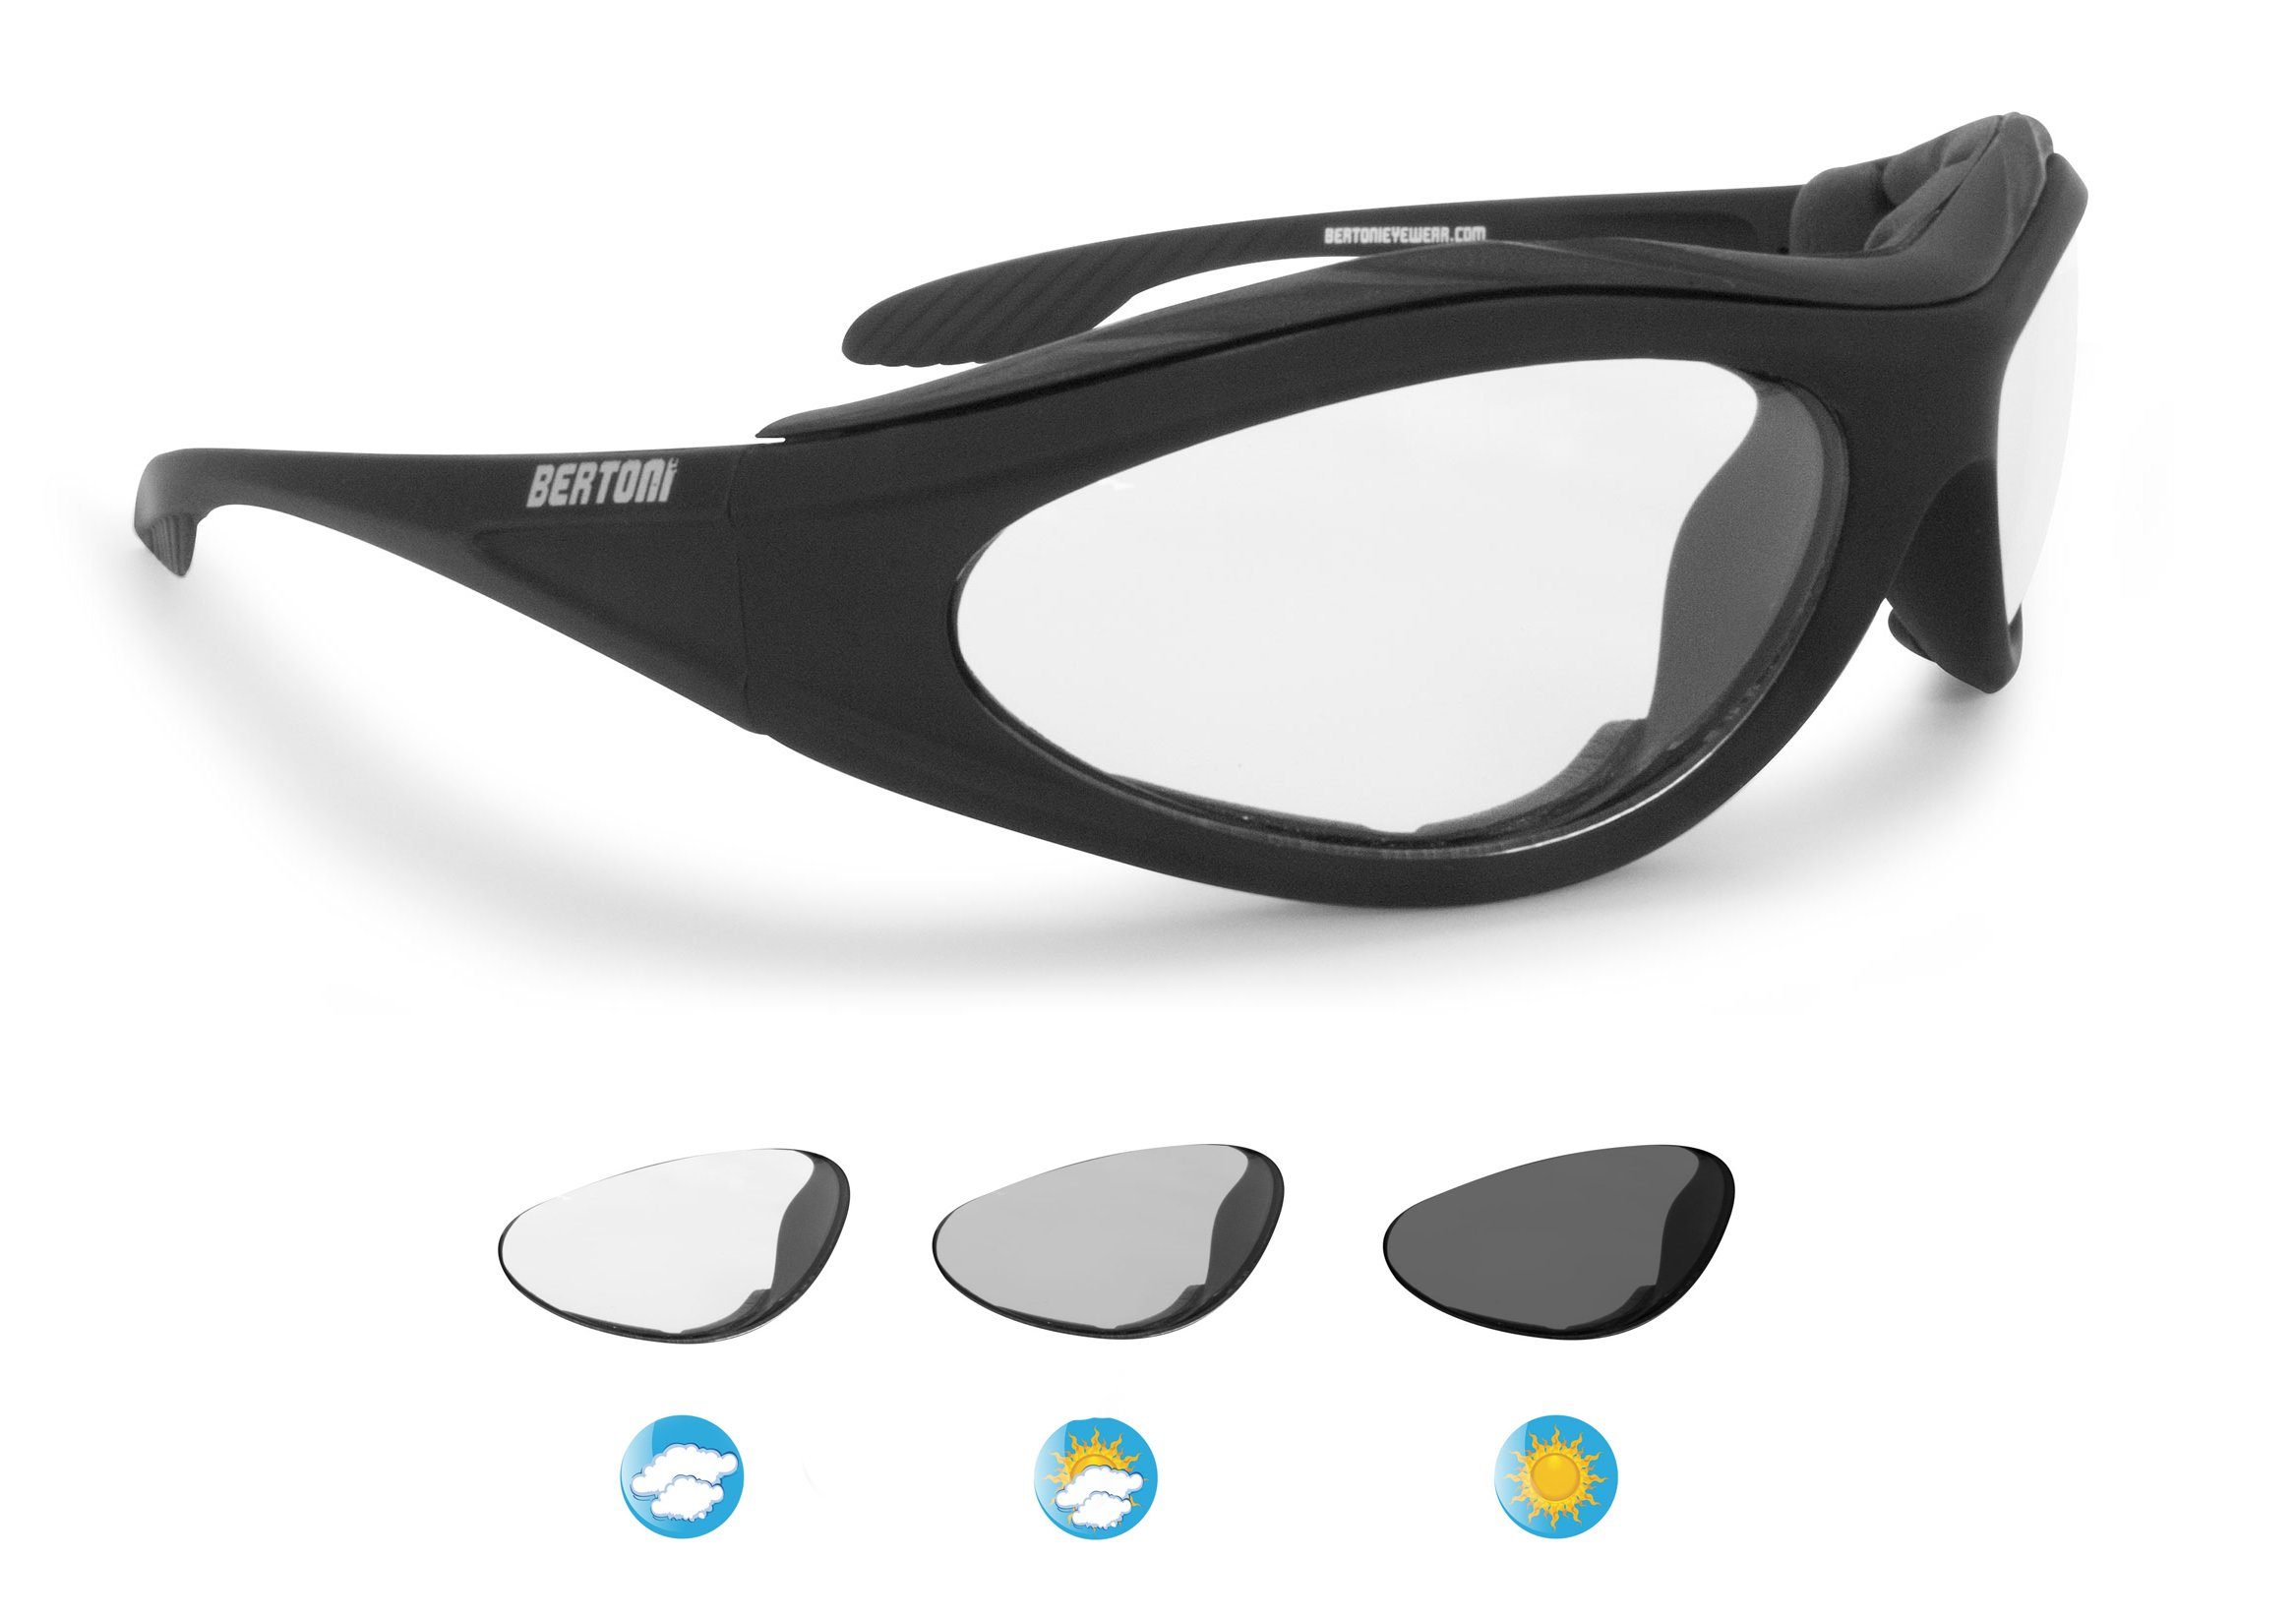 Photochromic Sport Sunglasses - Antifog Anticrash Lens - Windproof insert - by Bertoni Italy F125A1 Motorcycle Riding Goggles Padded Glasses